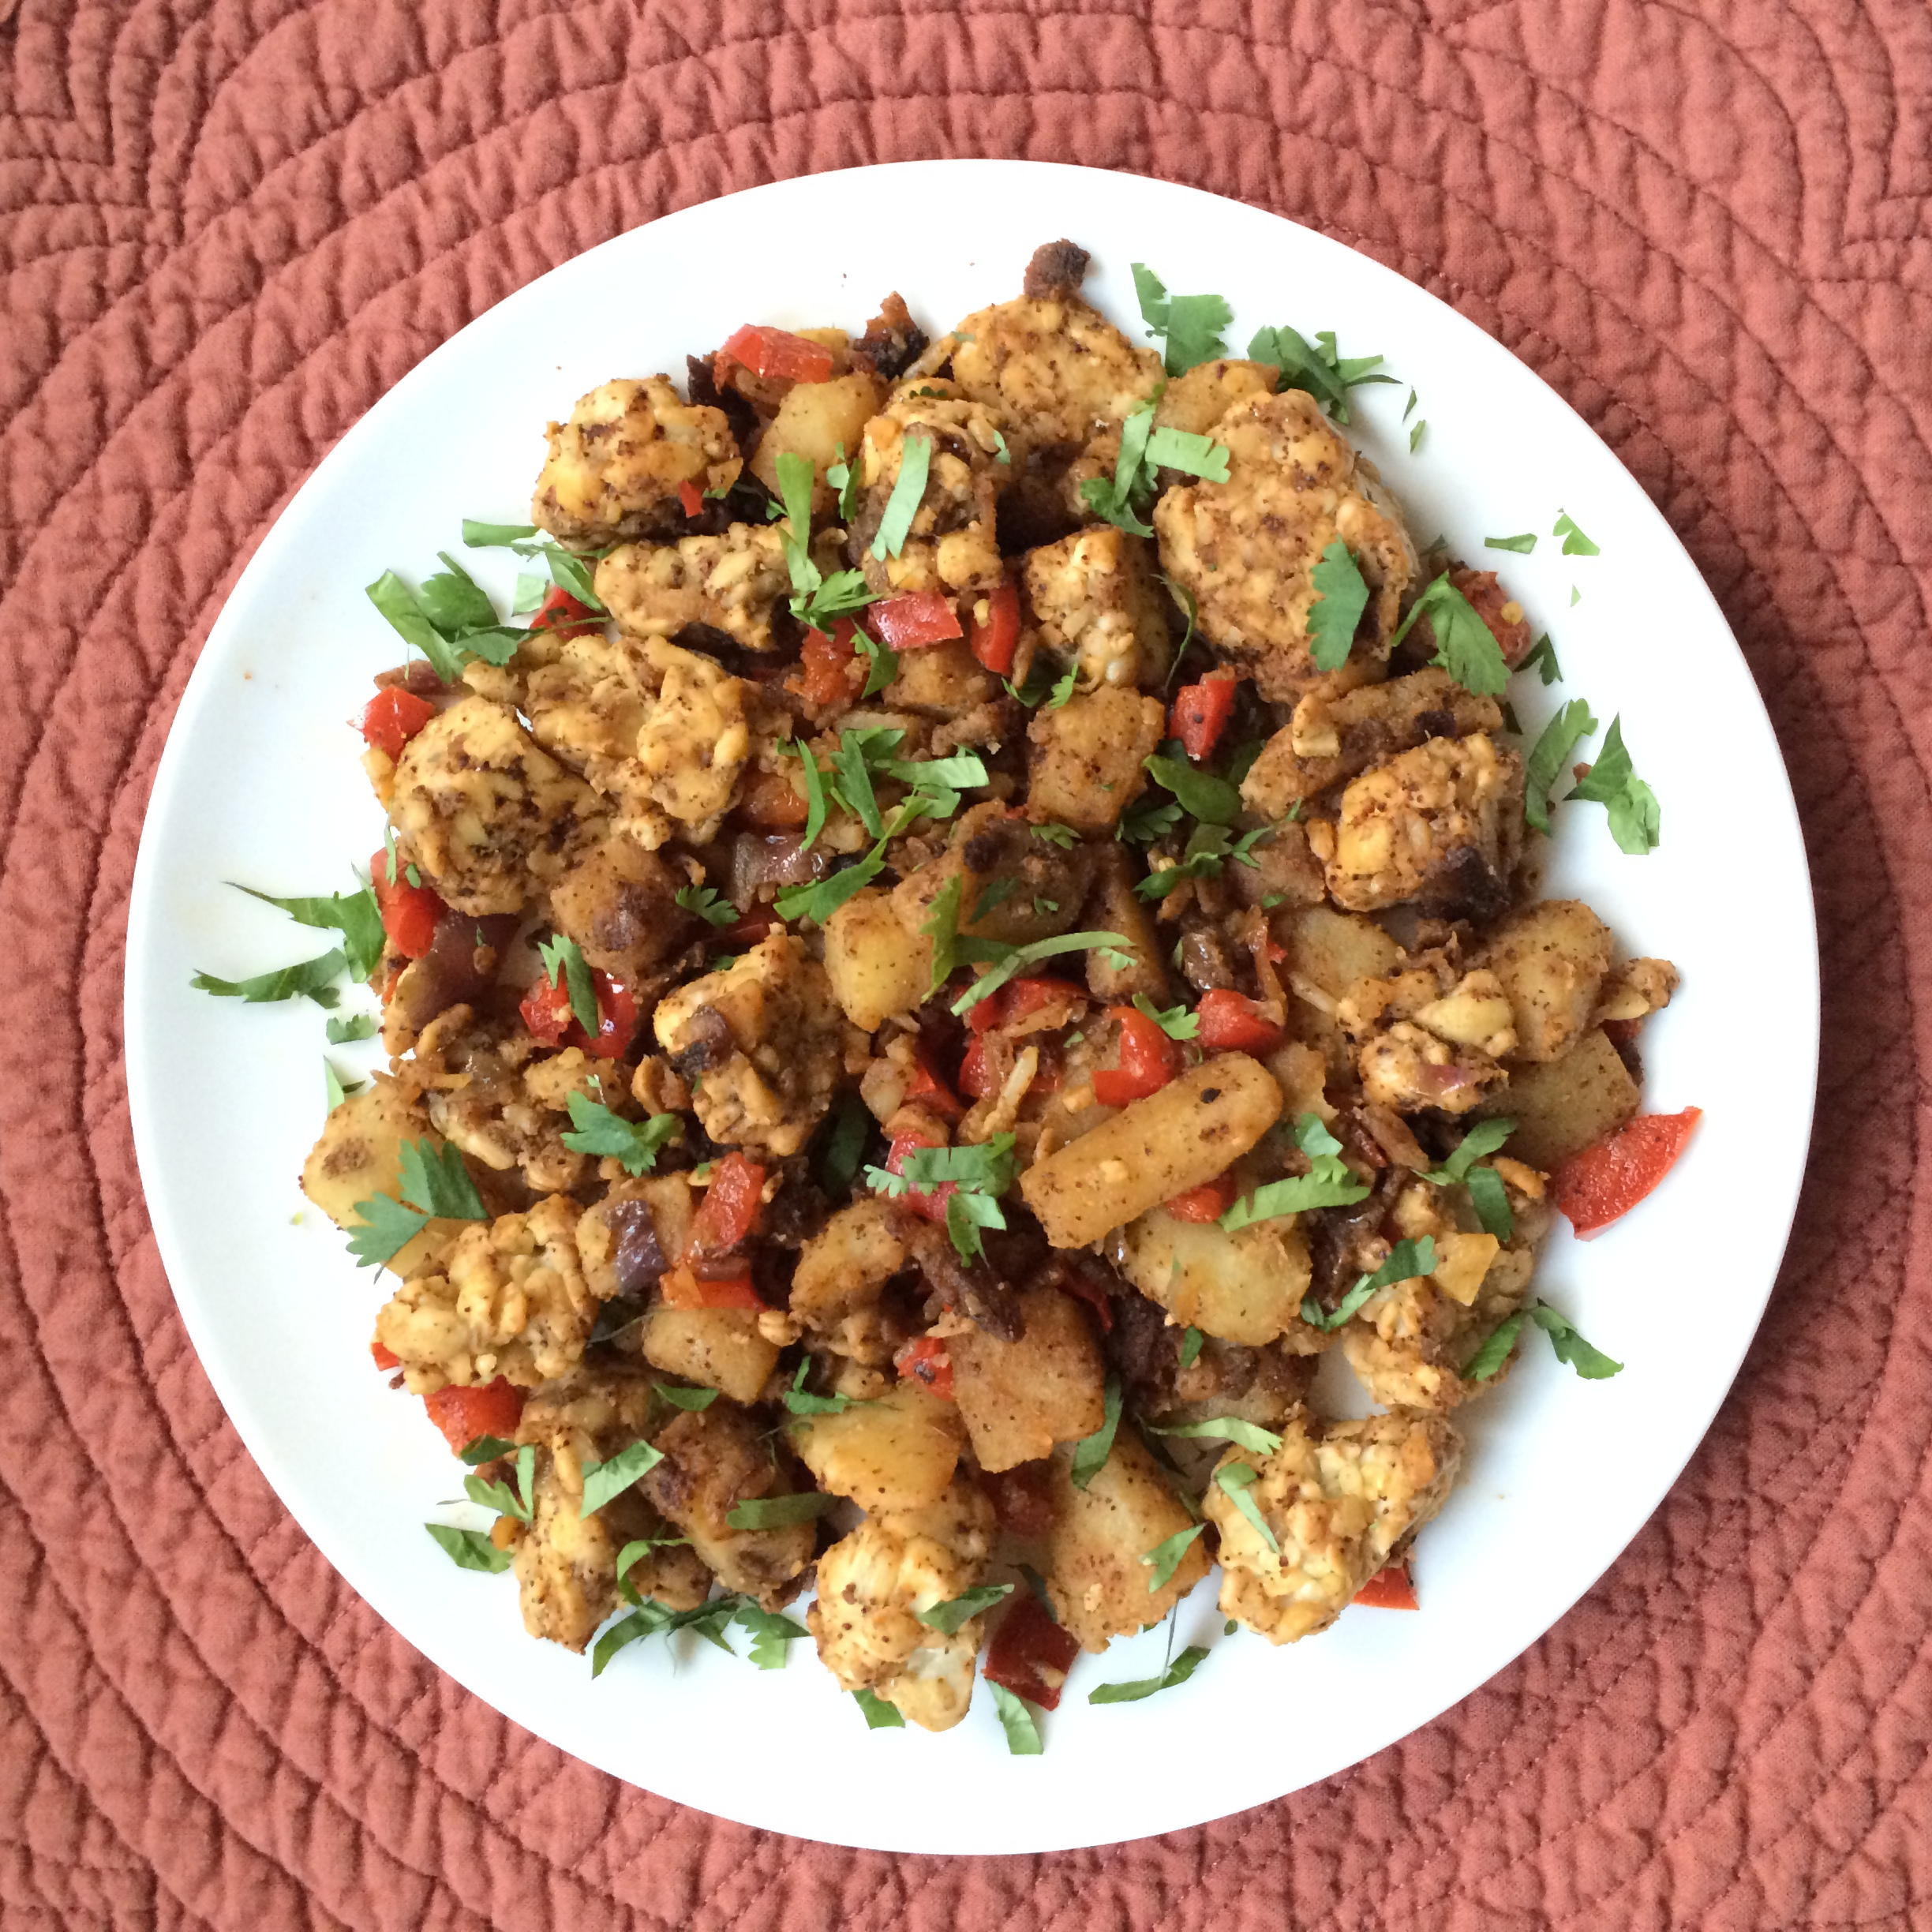 Tempeh and Potato Stir Fry